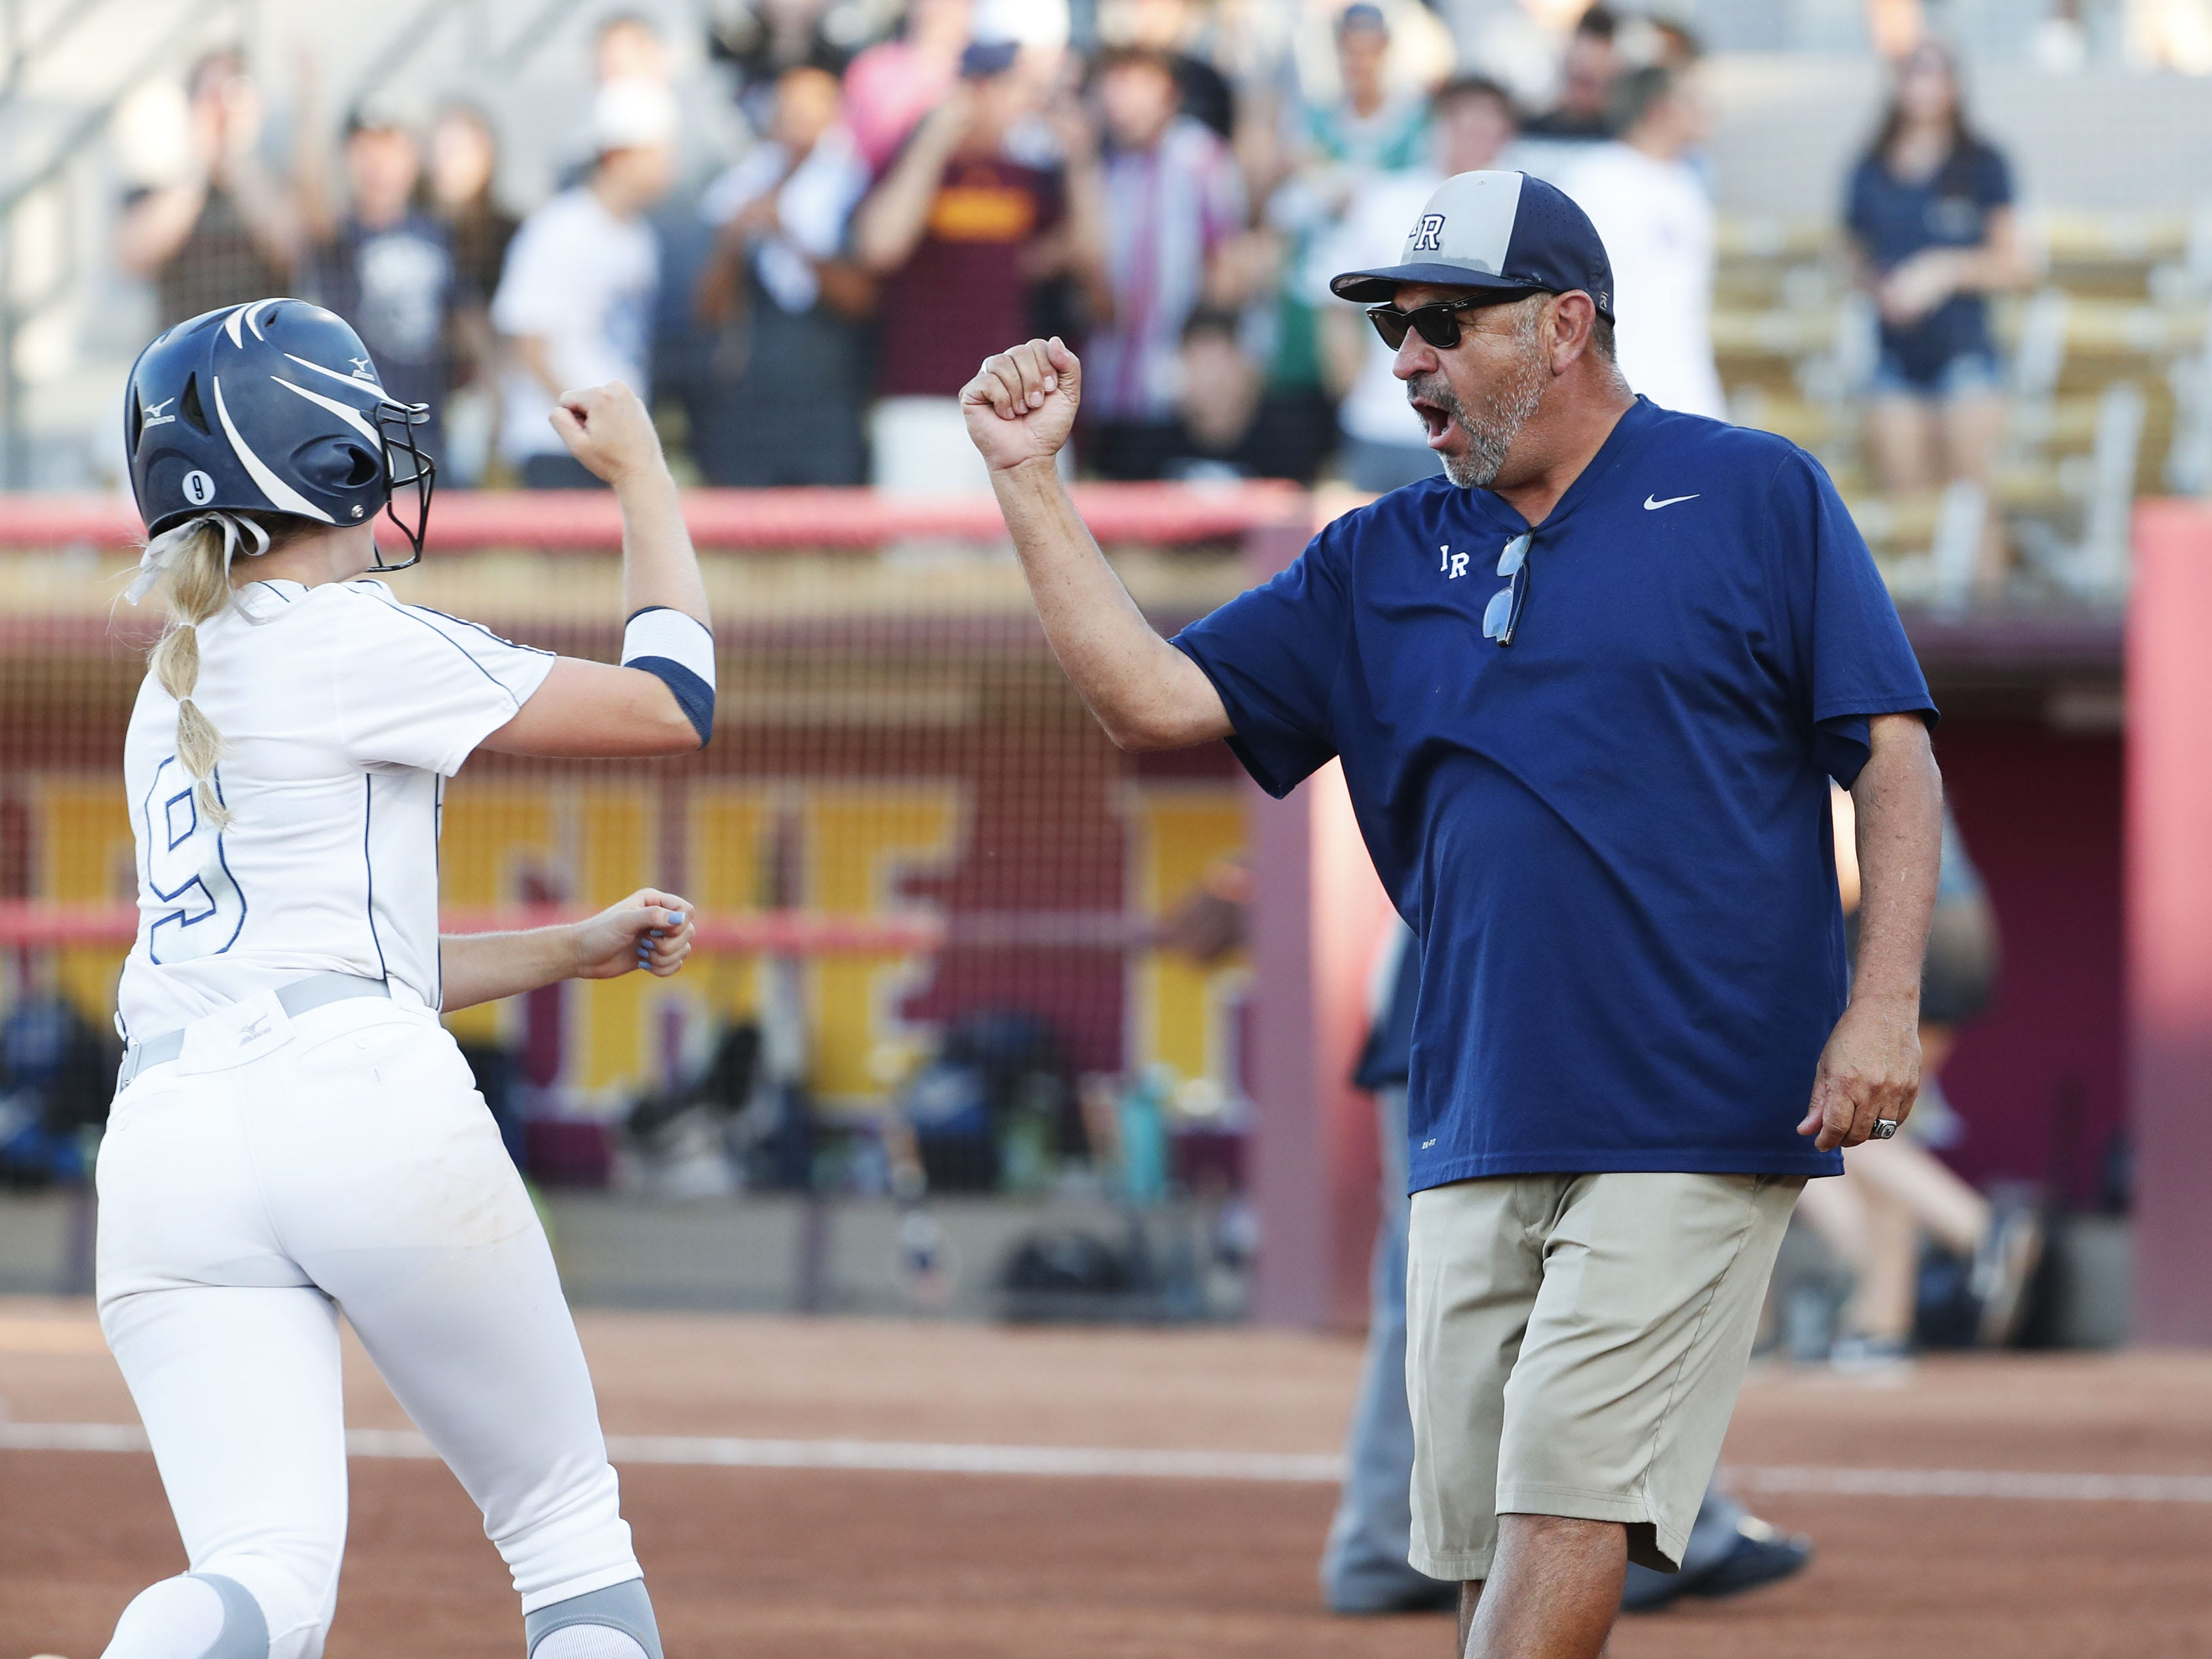 Ironwood Ridge head coach David Martinez congratulates Diana Nisbett (9) on her solo home run against Centennial during the 5A State Softball Championship in Tempe, Ariz. May 13, 2019.